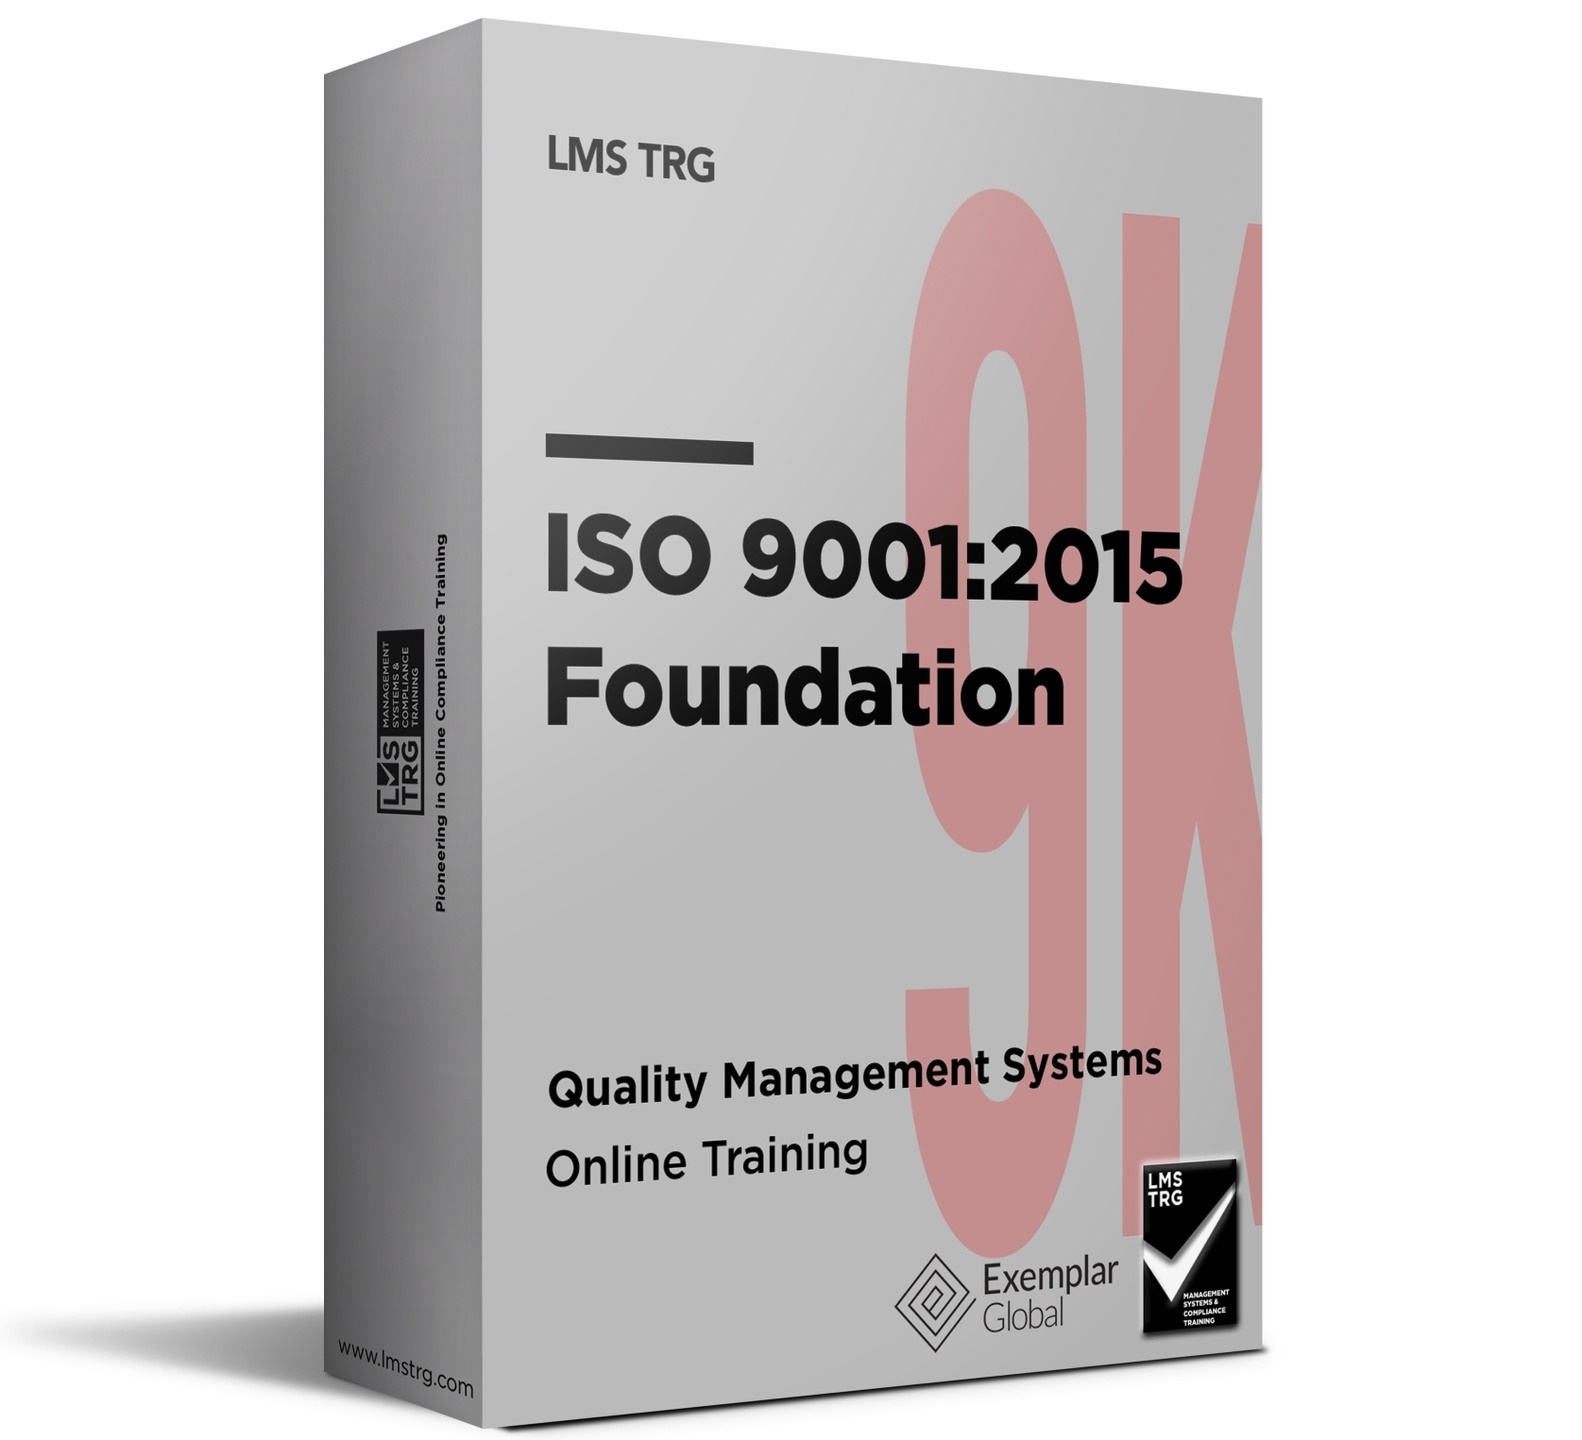 Quality Management Systems Foundation